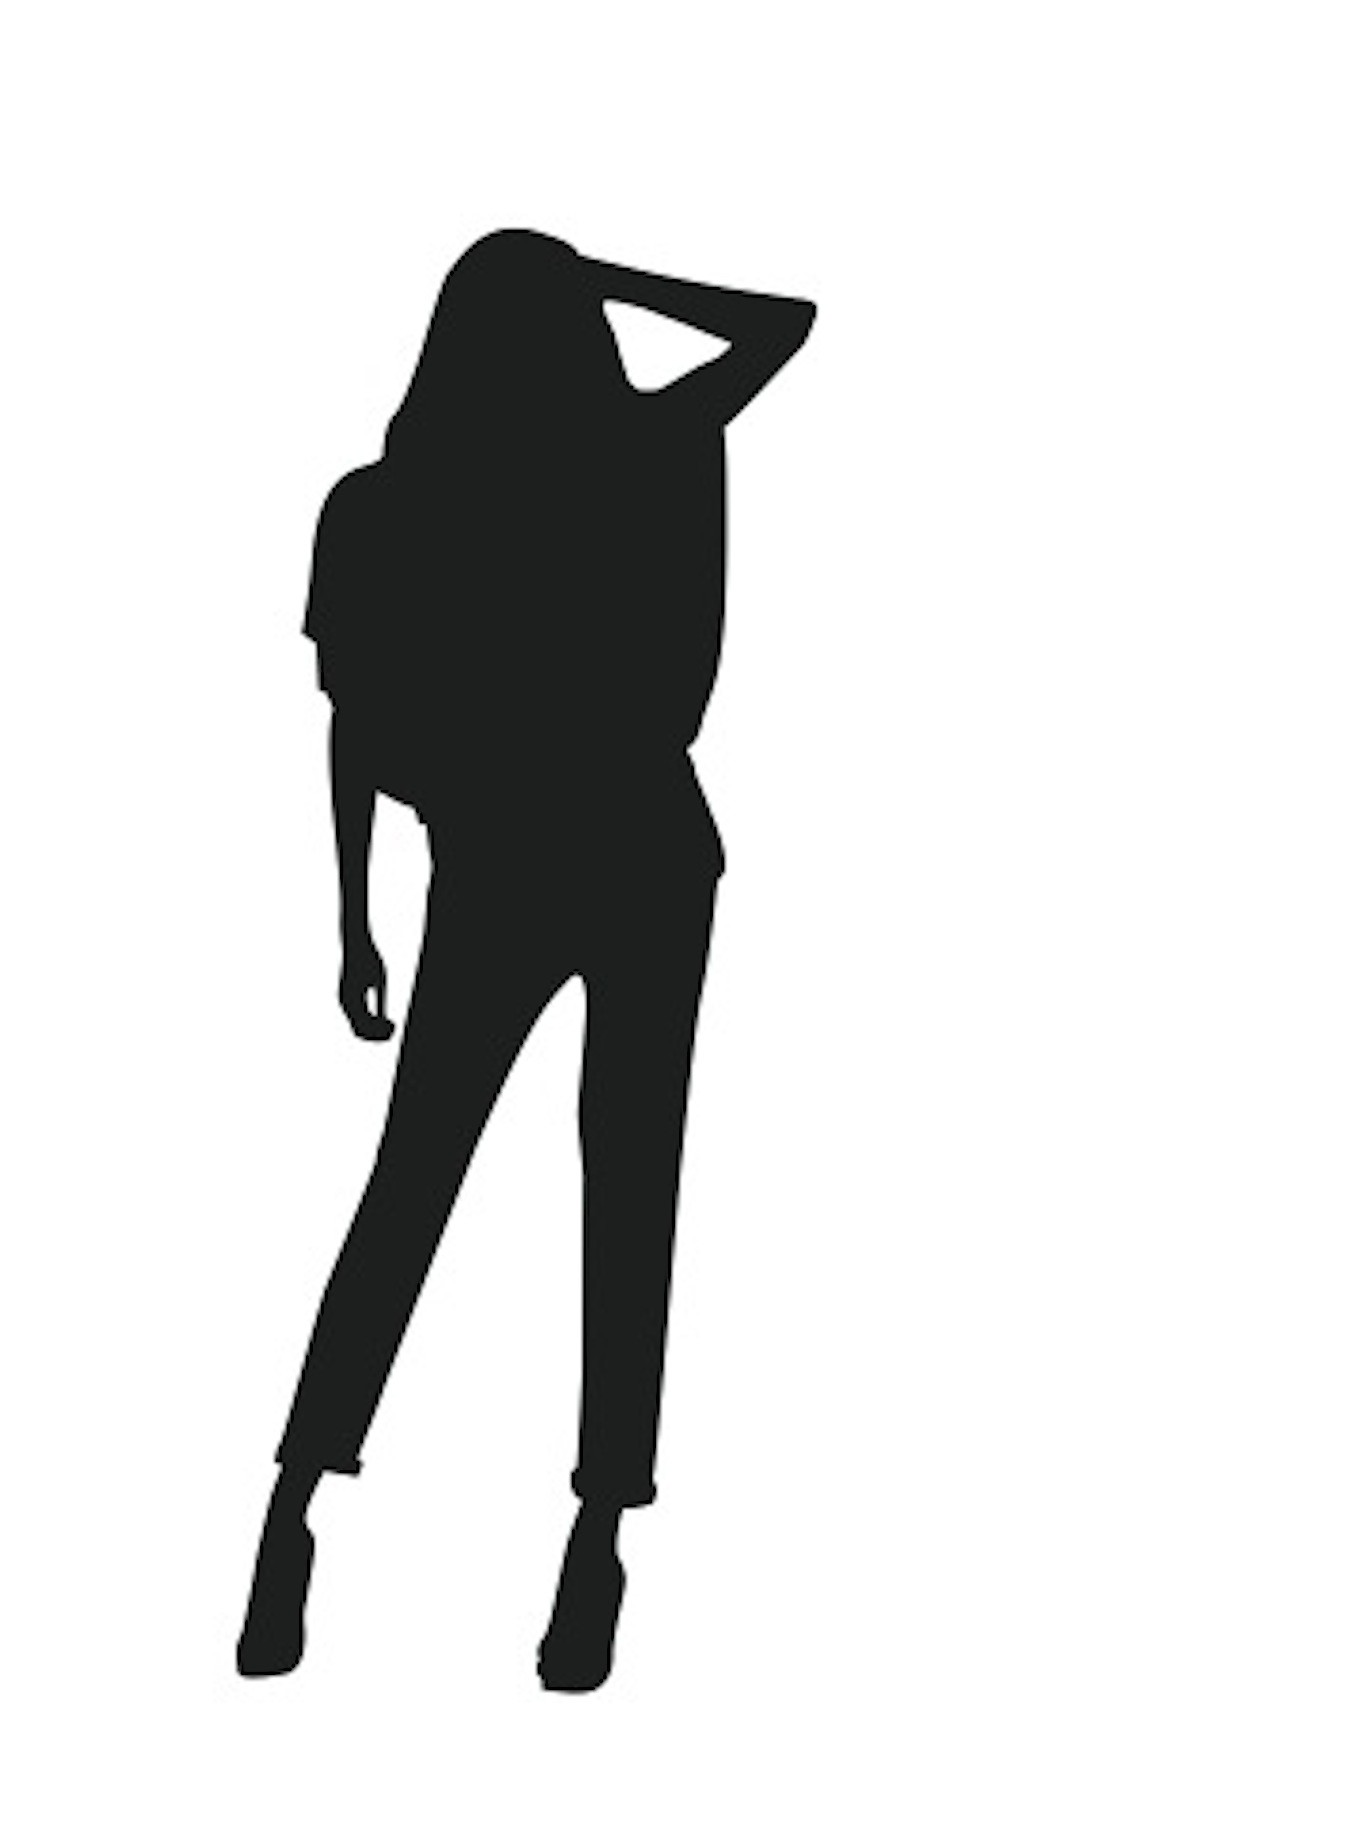 fashion through the ages which silhouette were you meant to have